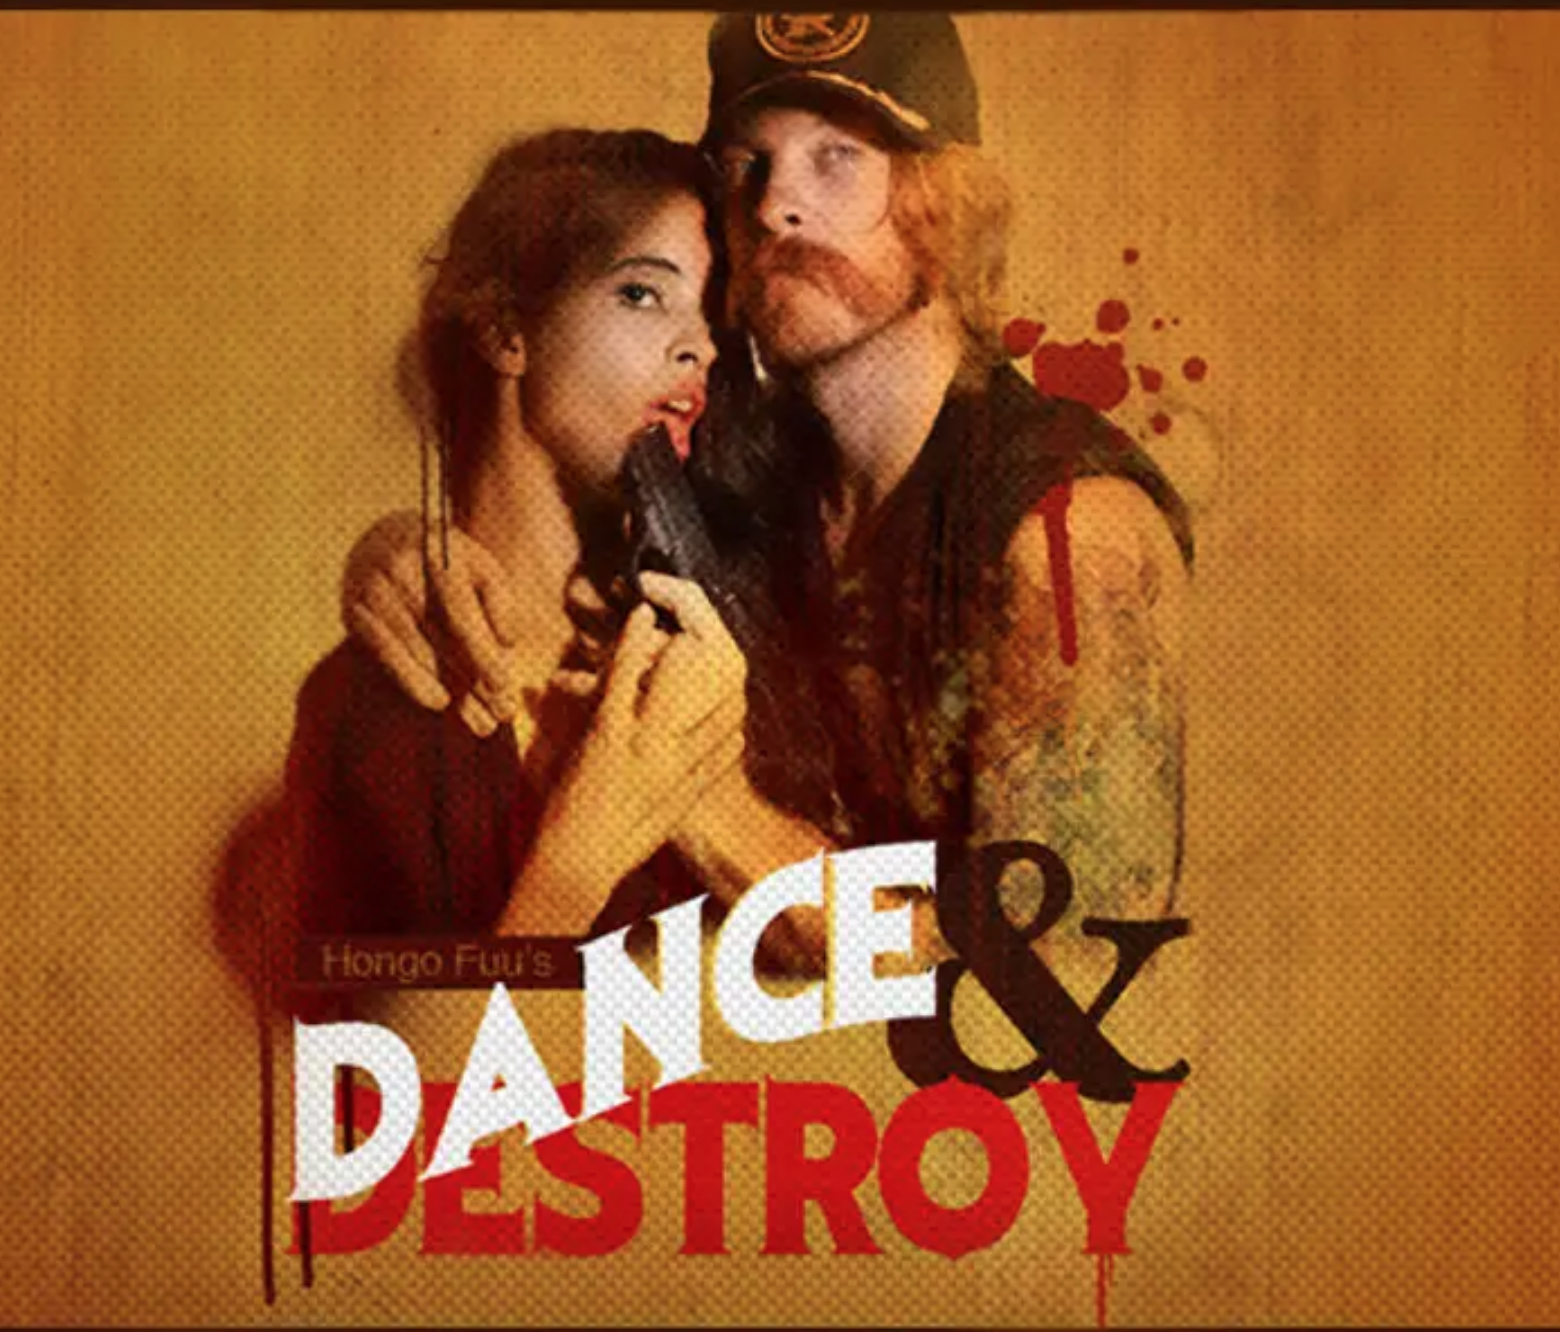 Music Video: Dance and destroy Hongo Fuu